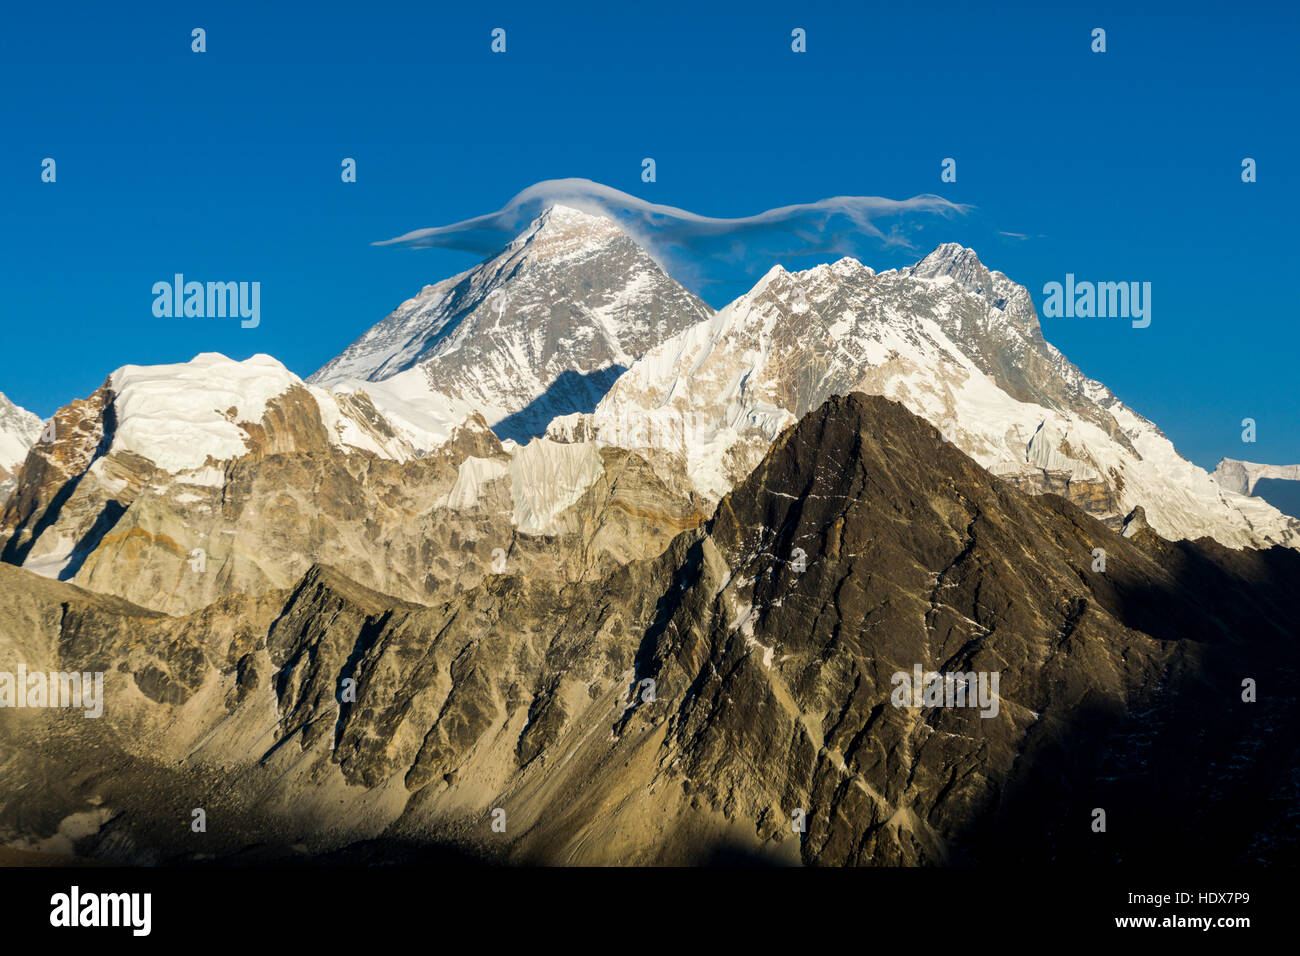 The mountain Mt. Everest (8848m) with a white cloud on top, seen from Gokyo Ri (5360m) at sunset - Stock Image